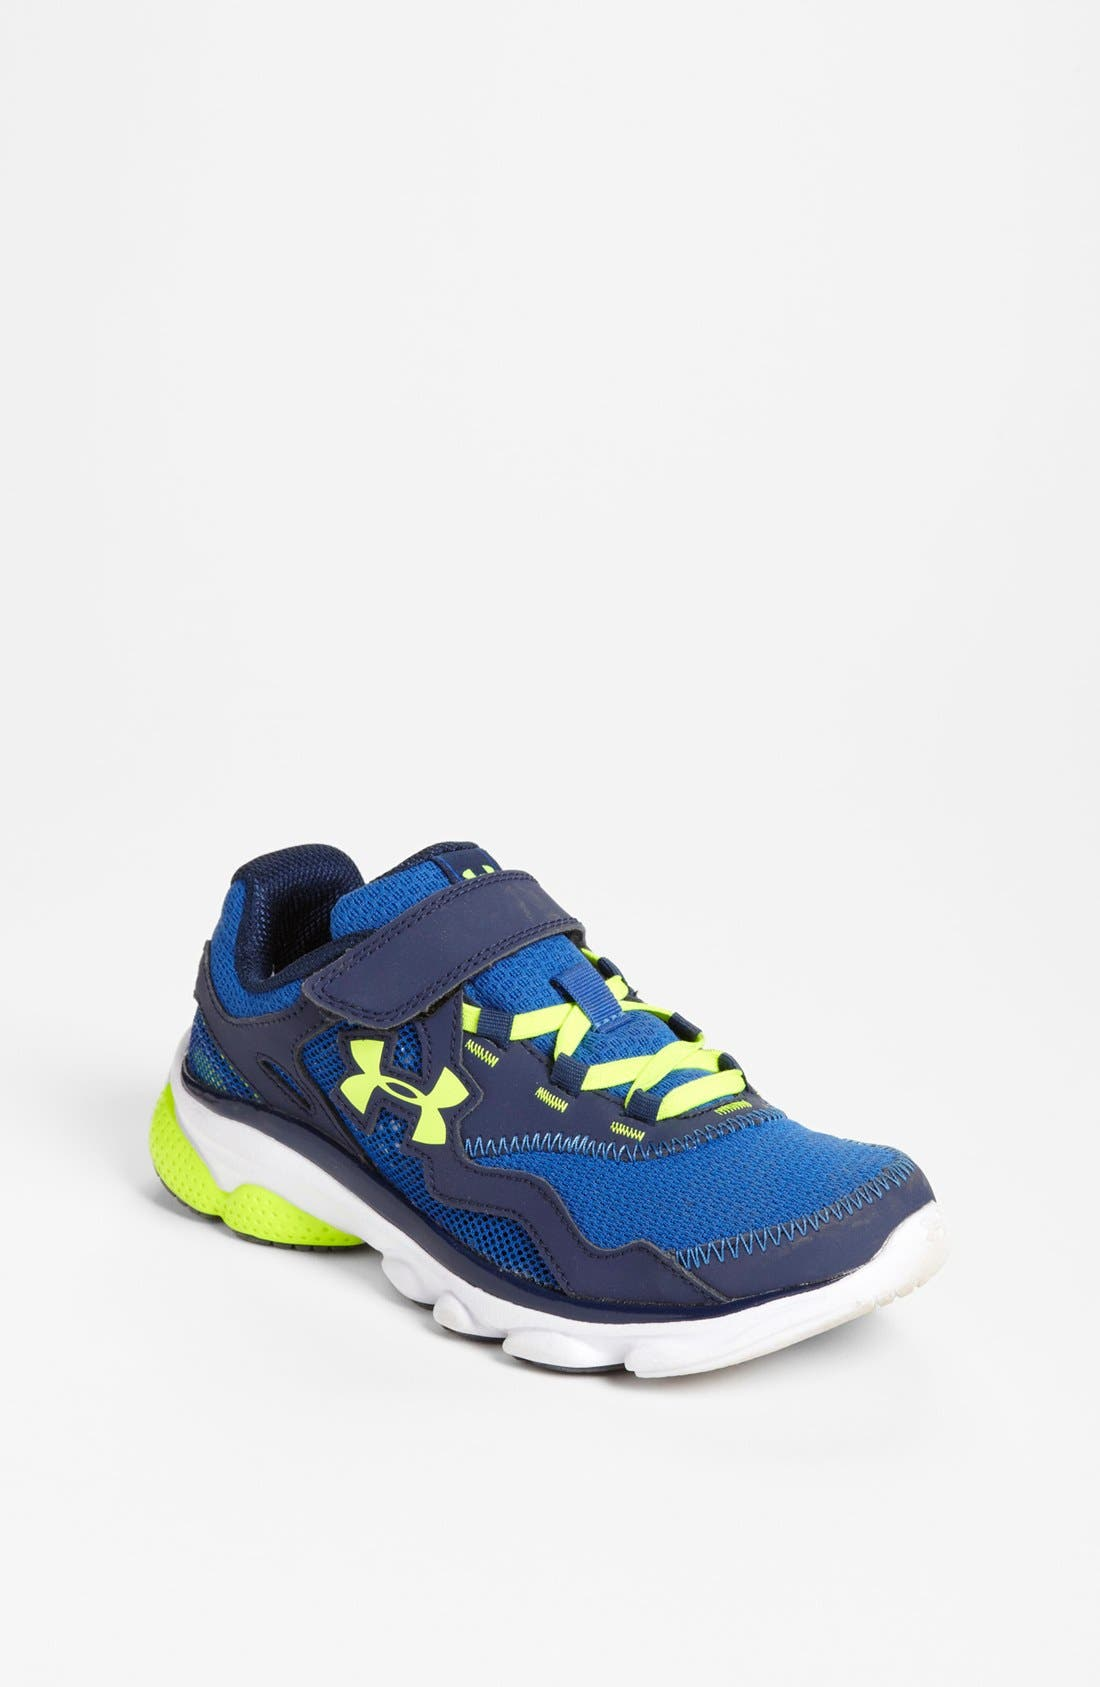 Main Image - Under Armour 'Assert III' Athletic Shoe (Baby, Walker, Toddler & Little Kid)